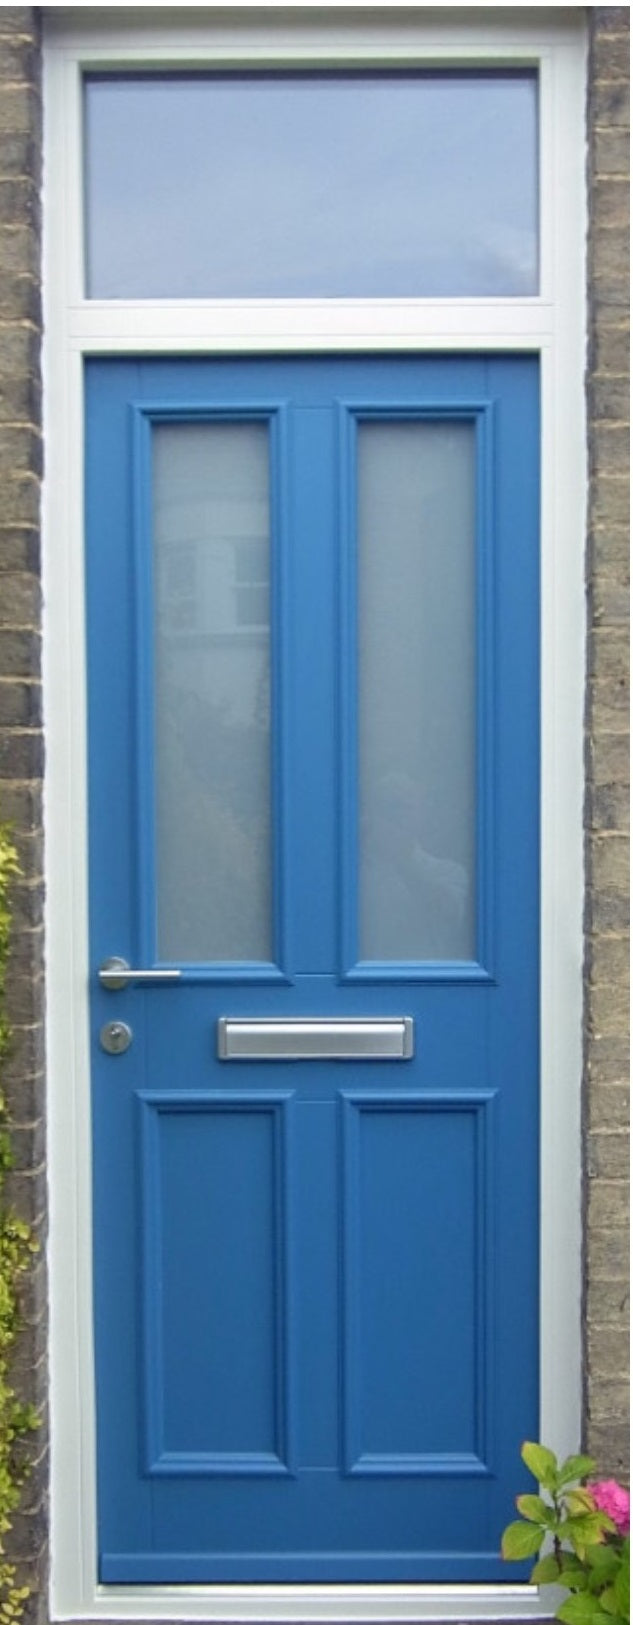 Kloeber Kensington Door and toplight